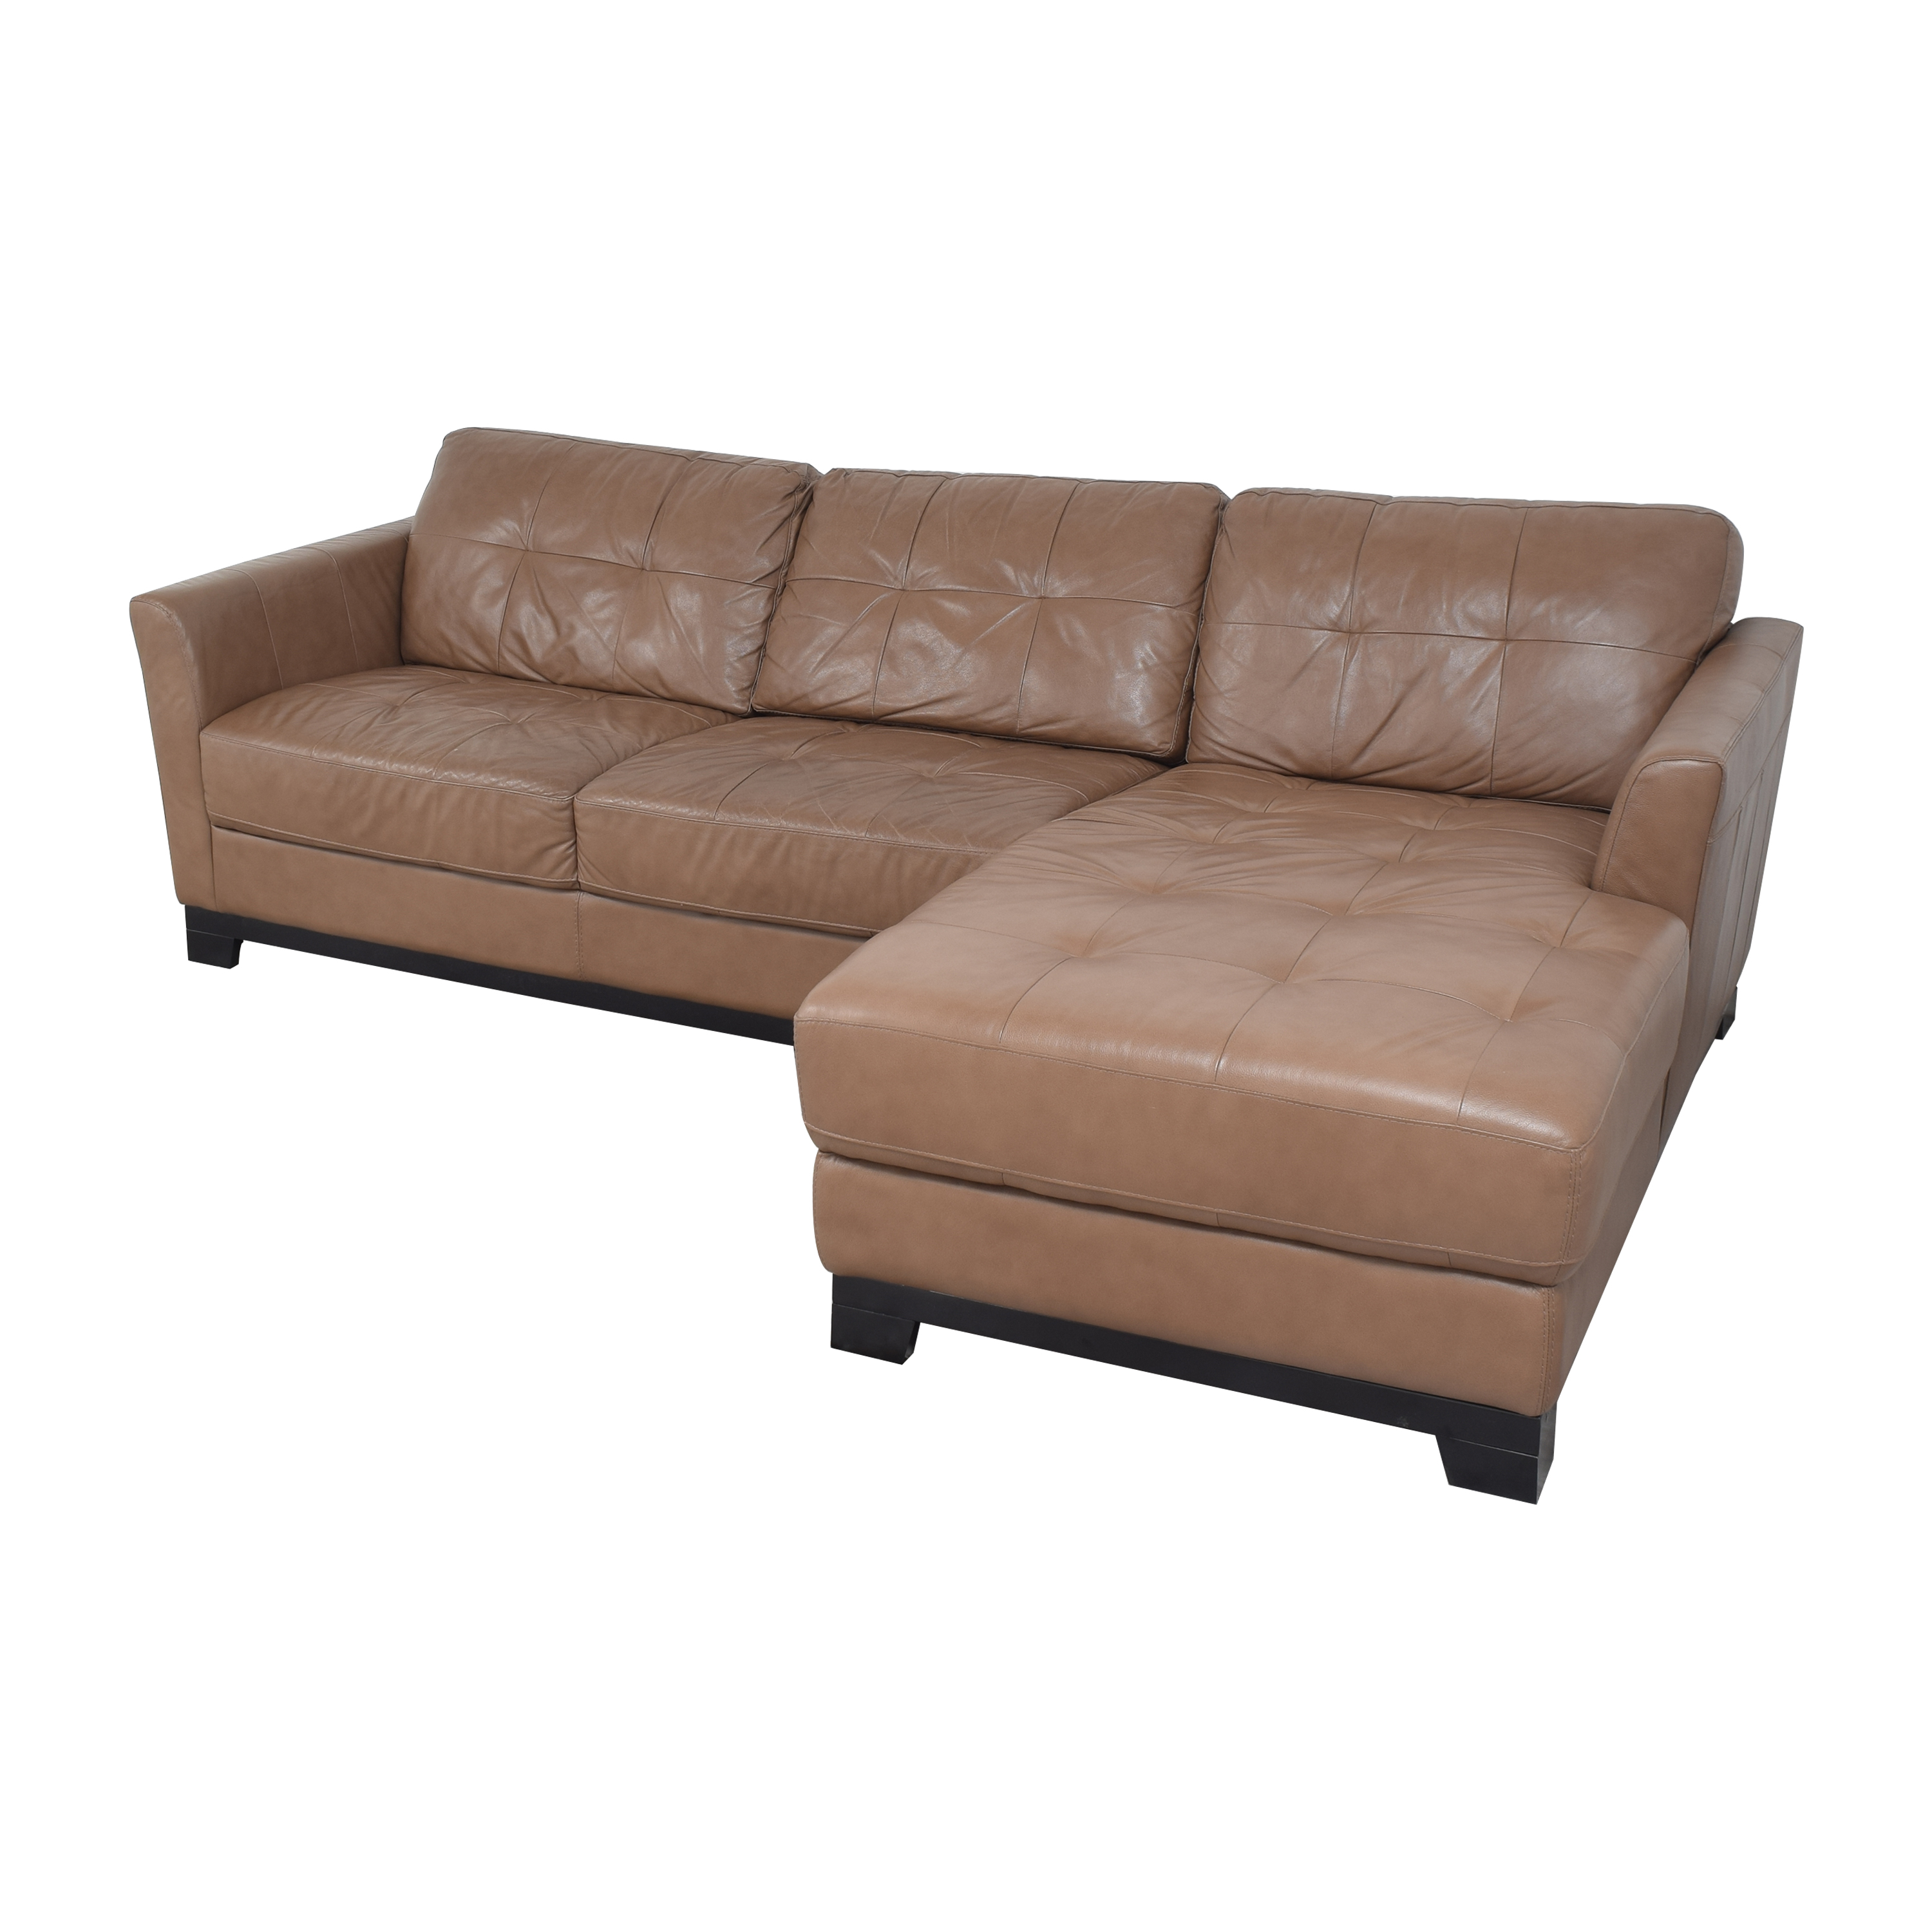 Chateau d'Ax Chateau d'Ax Chaise Sectional Sofa for sale